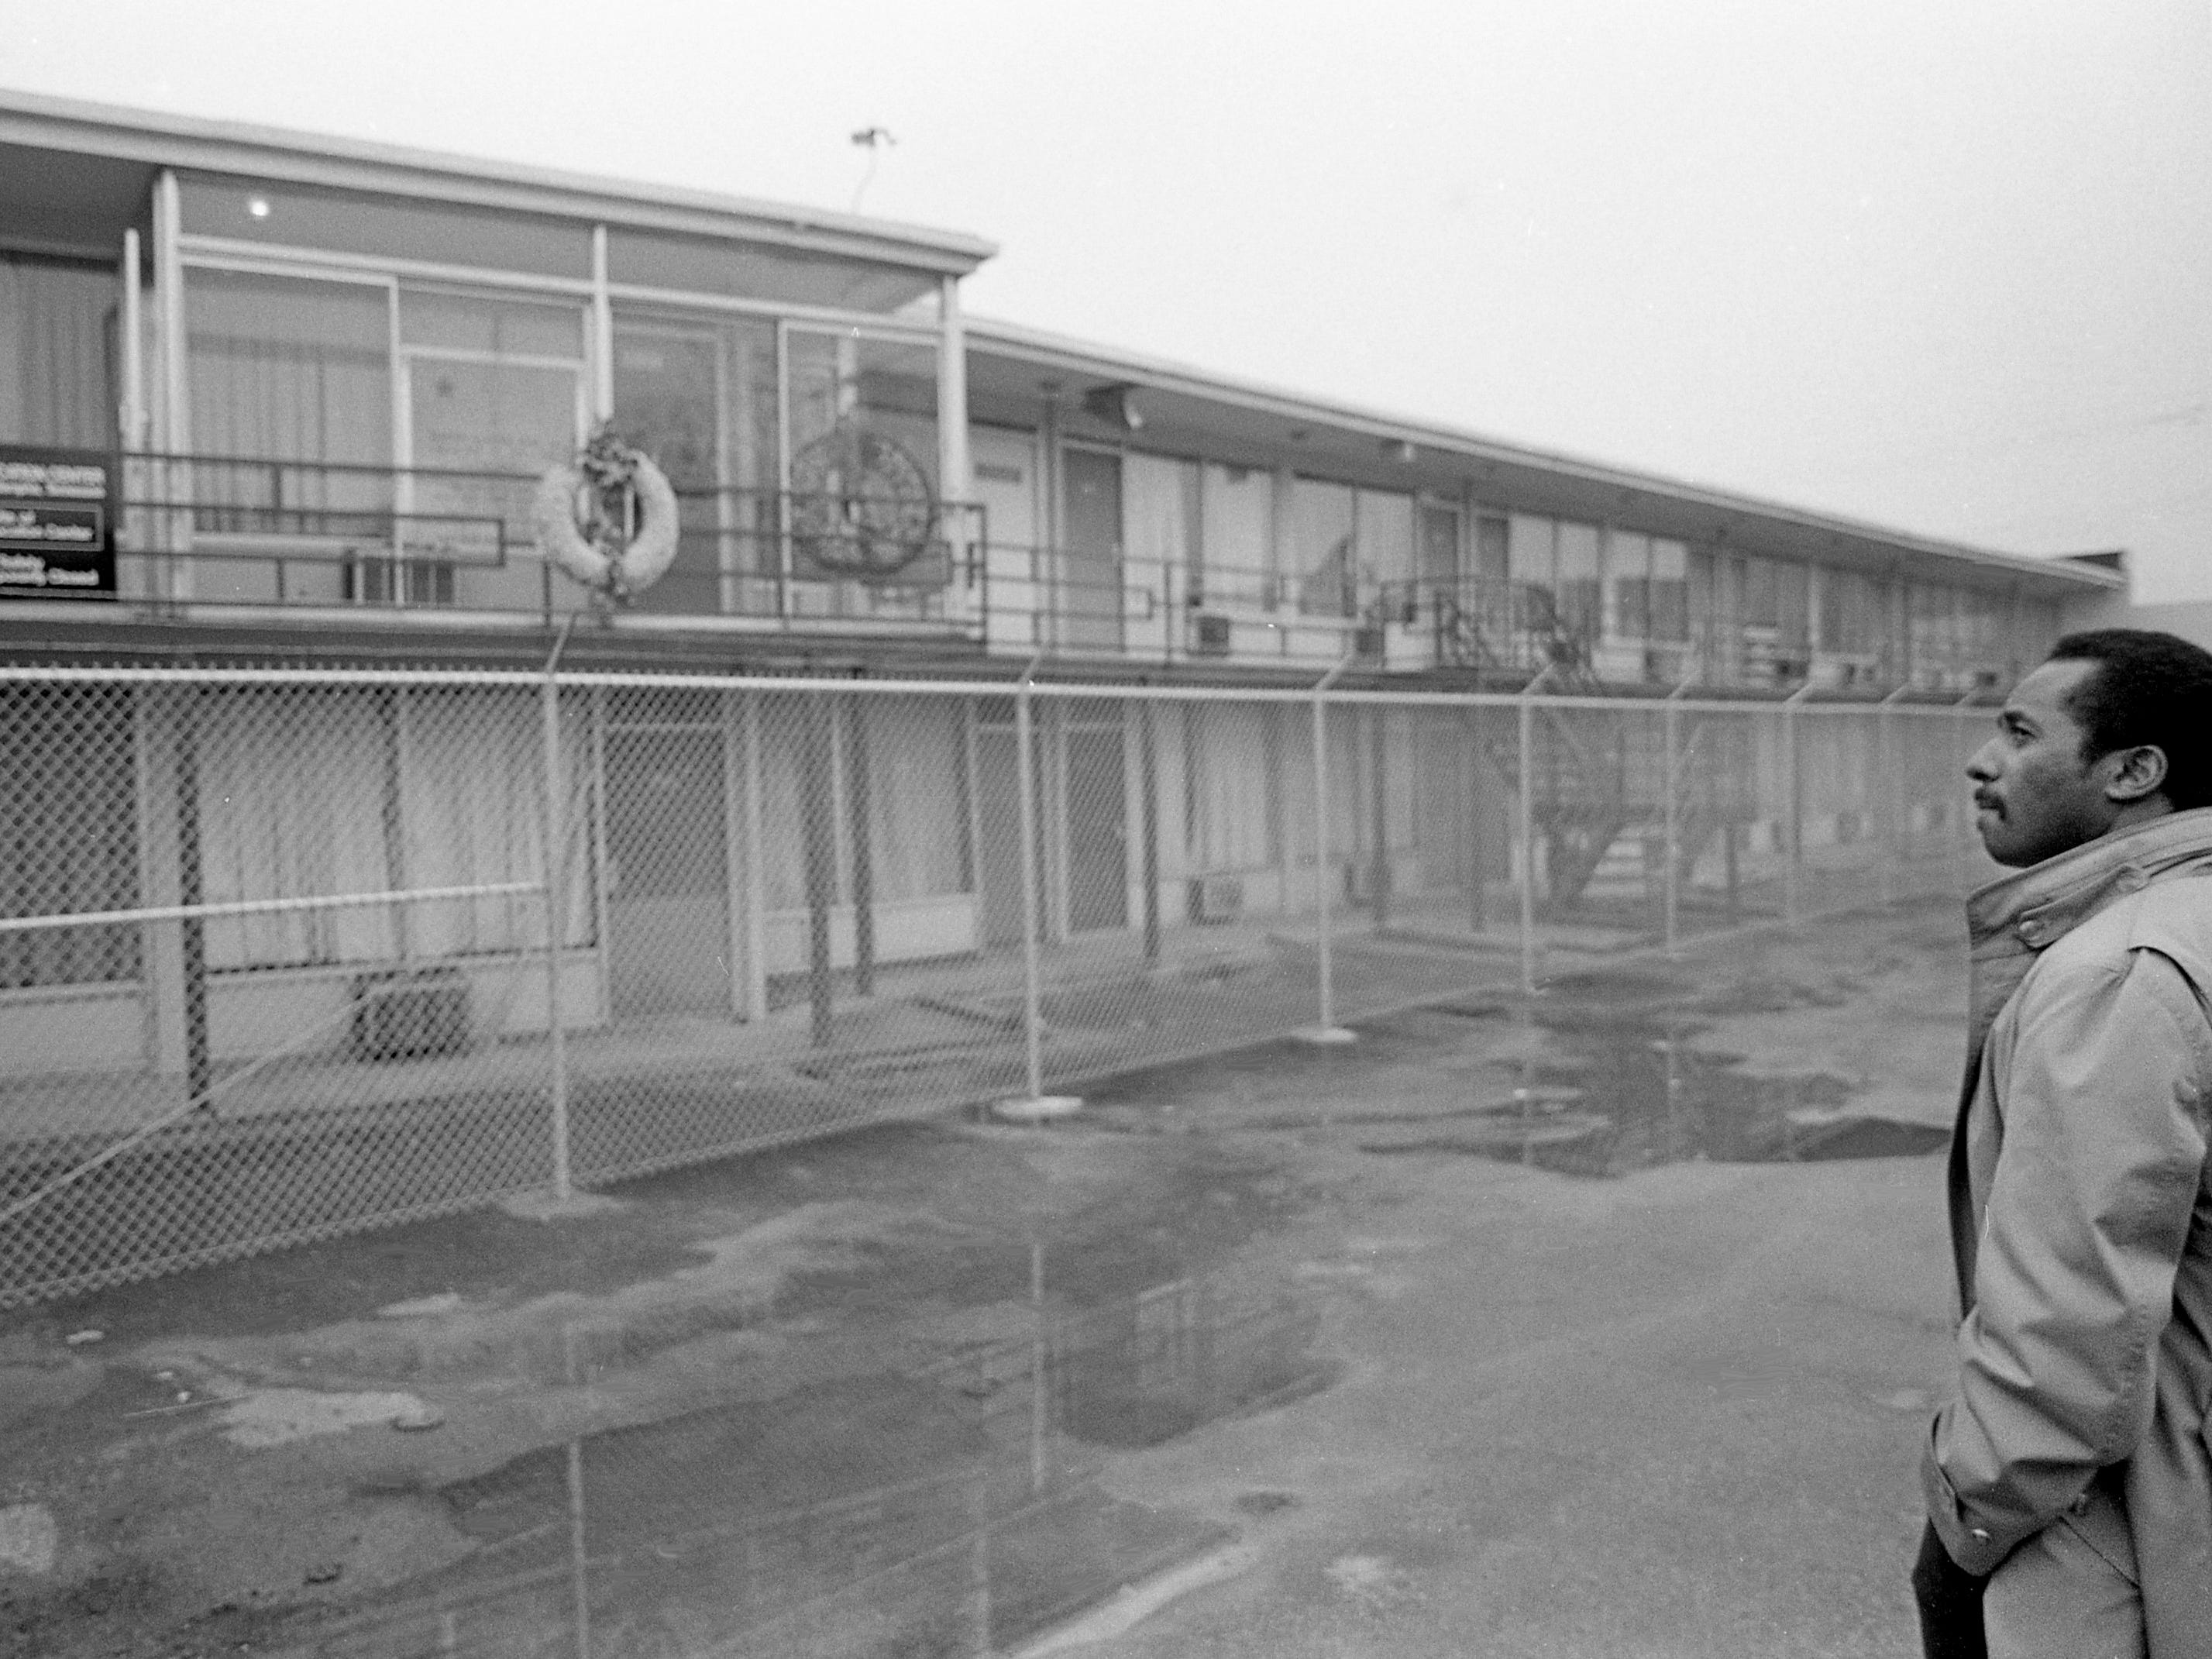 Tennessean reporter Dwight Lewis checks out the closed-off Lorraine Motel in Memphis on Feb. 3, 1988. The site of Martin Luther King Jr.'s assassination on April 4, 1968, will be turned into a civil rights museum.